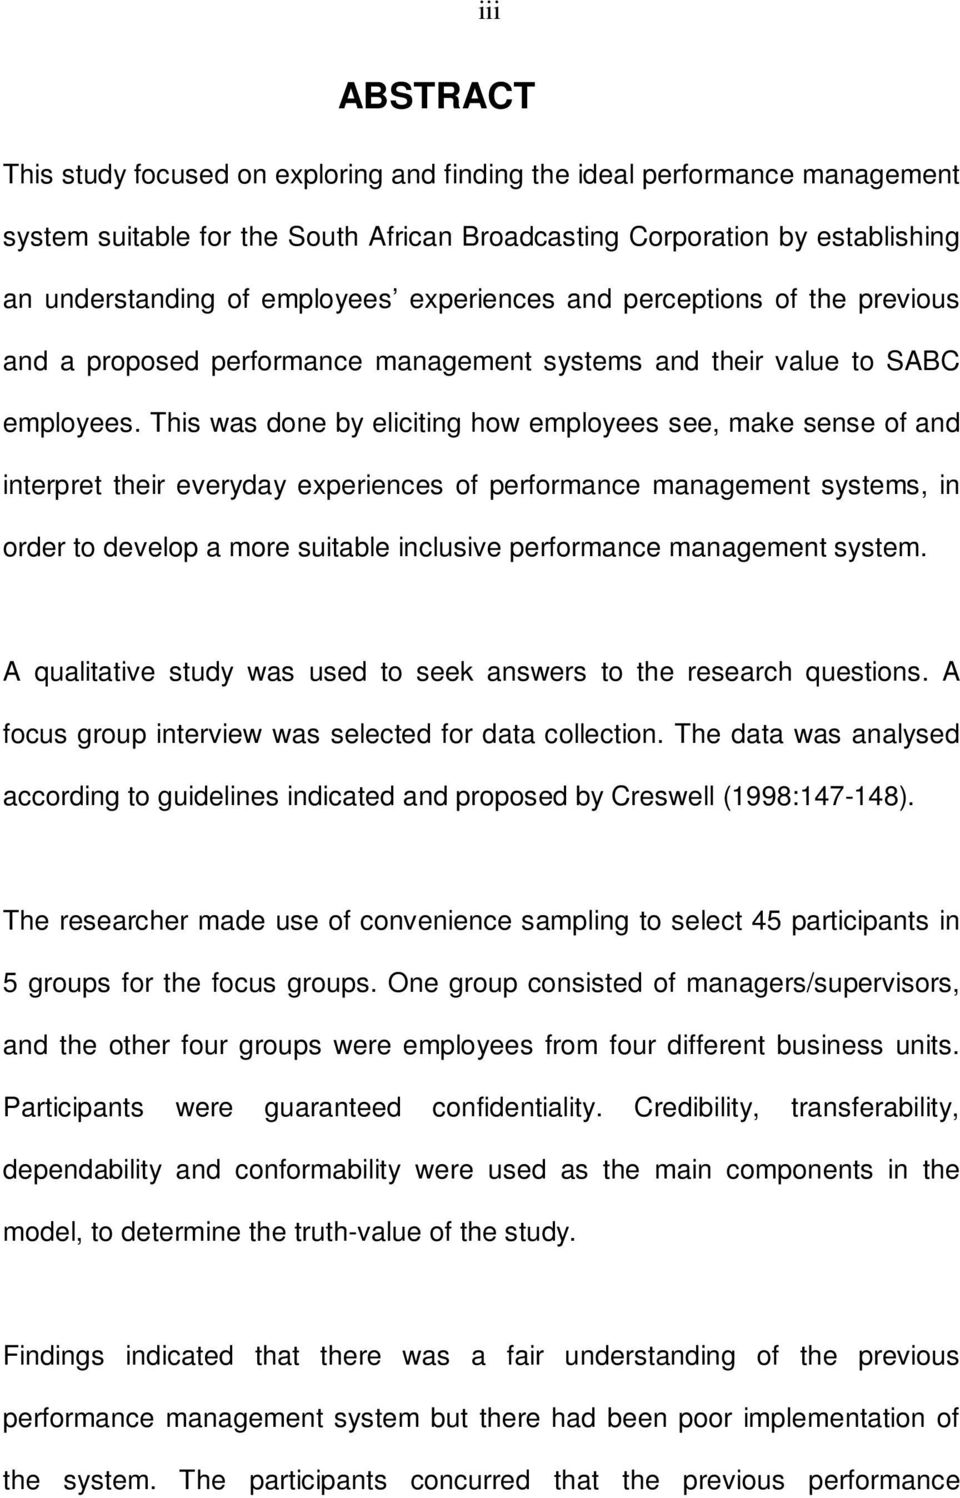 This was done by eliciting how employees see, make sense of and interpret their everyday experiences of performance management systems, in order to develop a more suitable inclusive performance